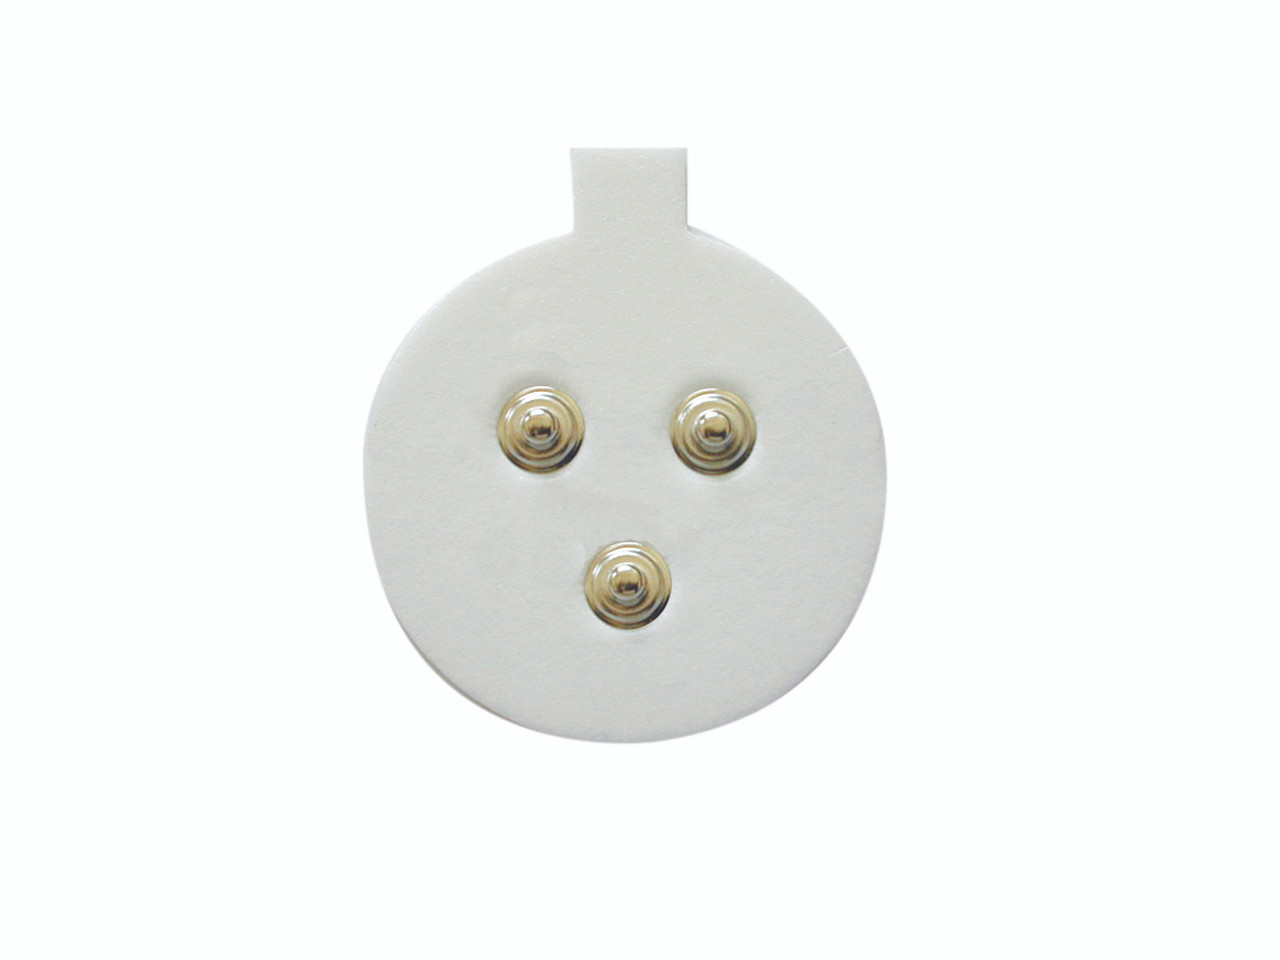 sEMG - triode electrodes only, 2 cm circle, case of 100